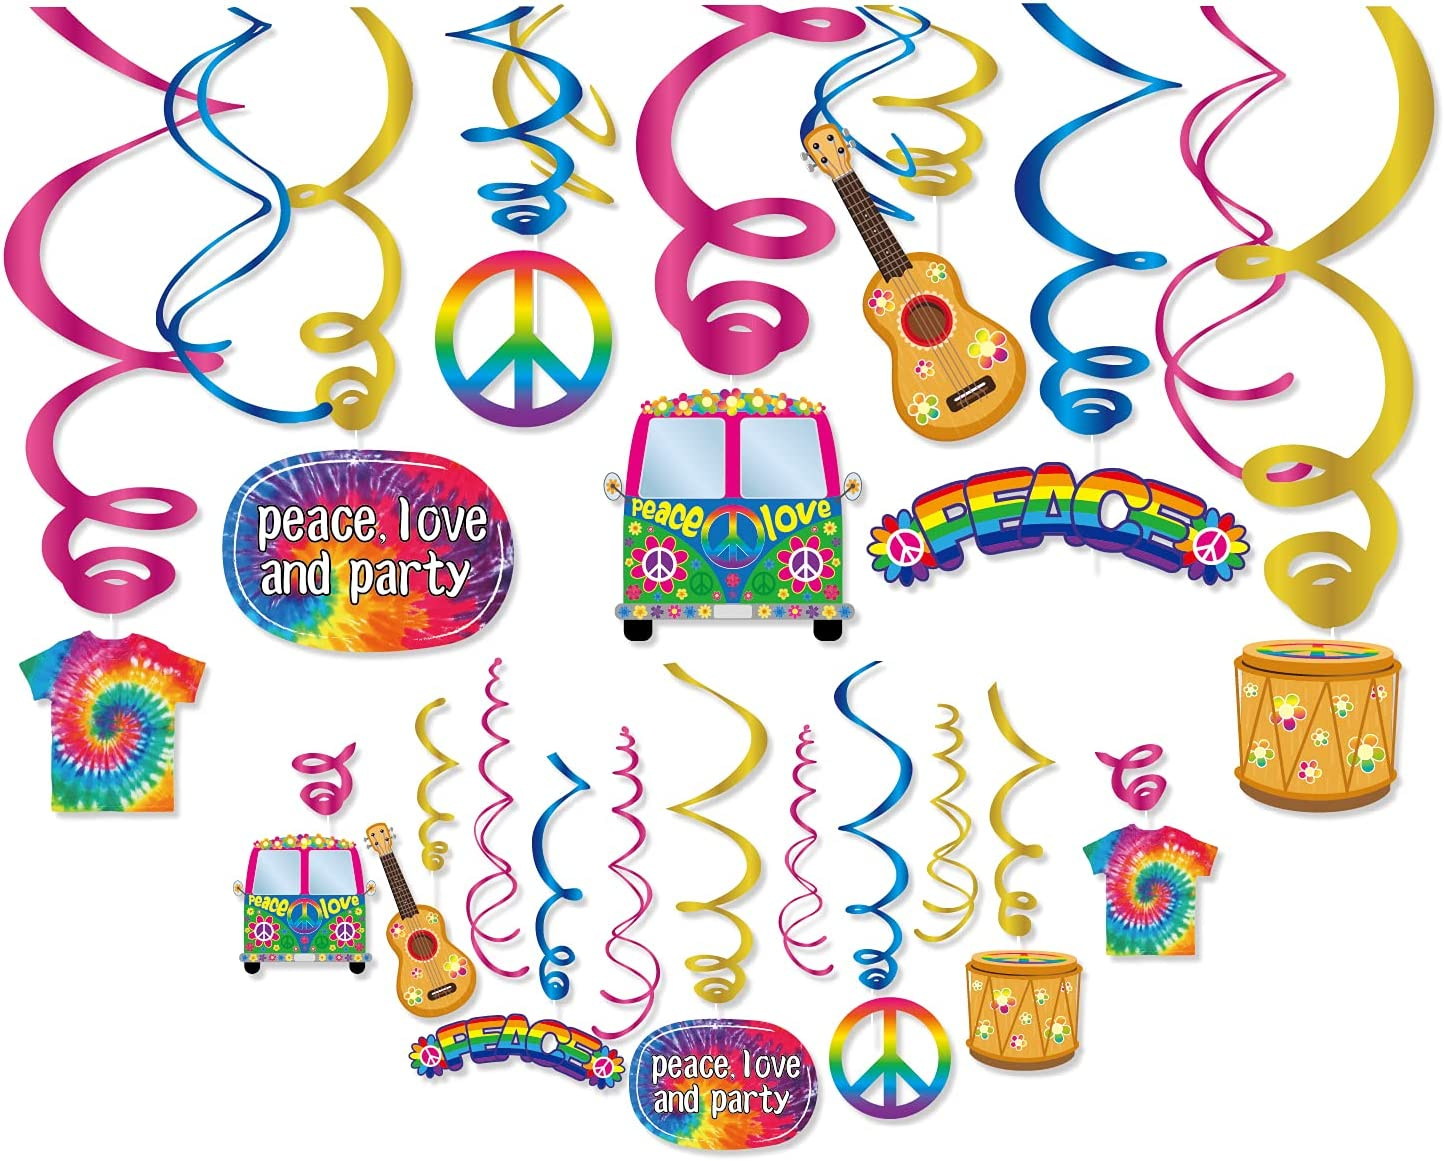 Kristin Paradise 30Ct Hippie Hanging Swirl Decorations, 60's 70's Groovy Party Supplies, Tie Dye Birthday Theme Decor for Boy Girl Baby Shower, Peace Sign 1st Bday Favors Idea